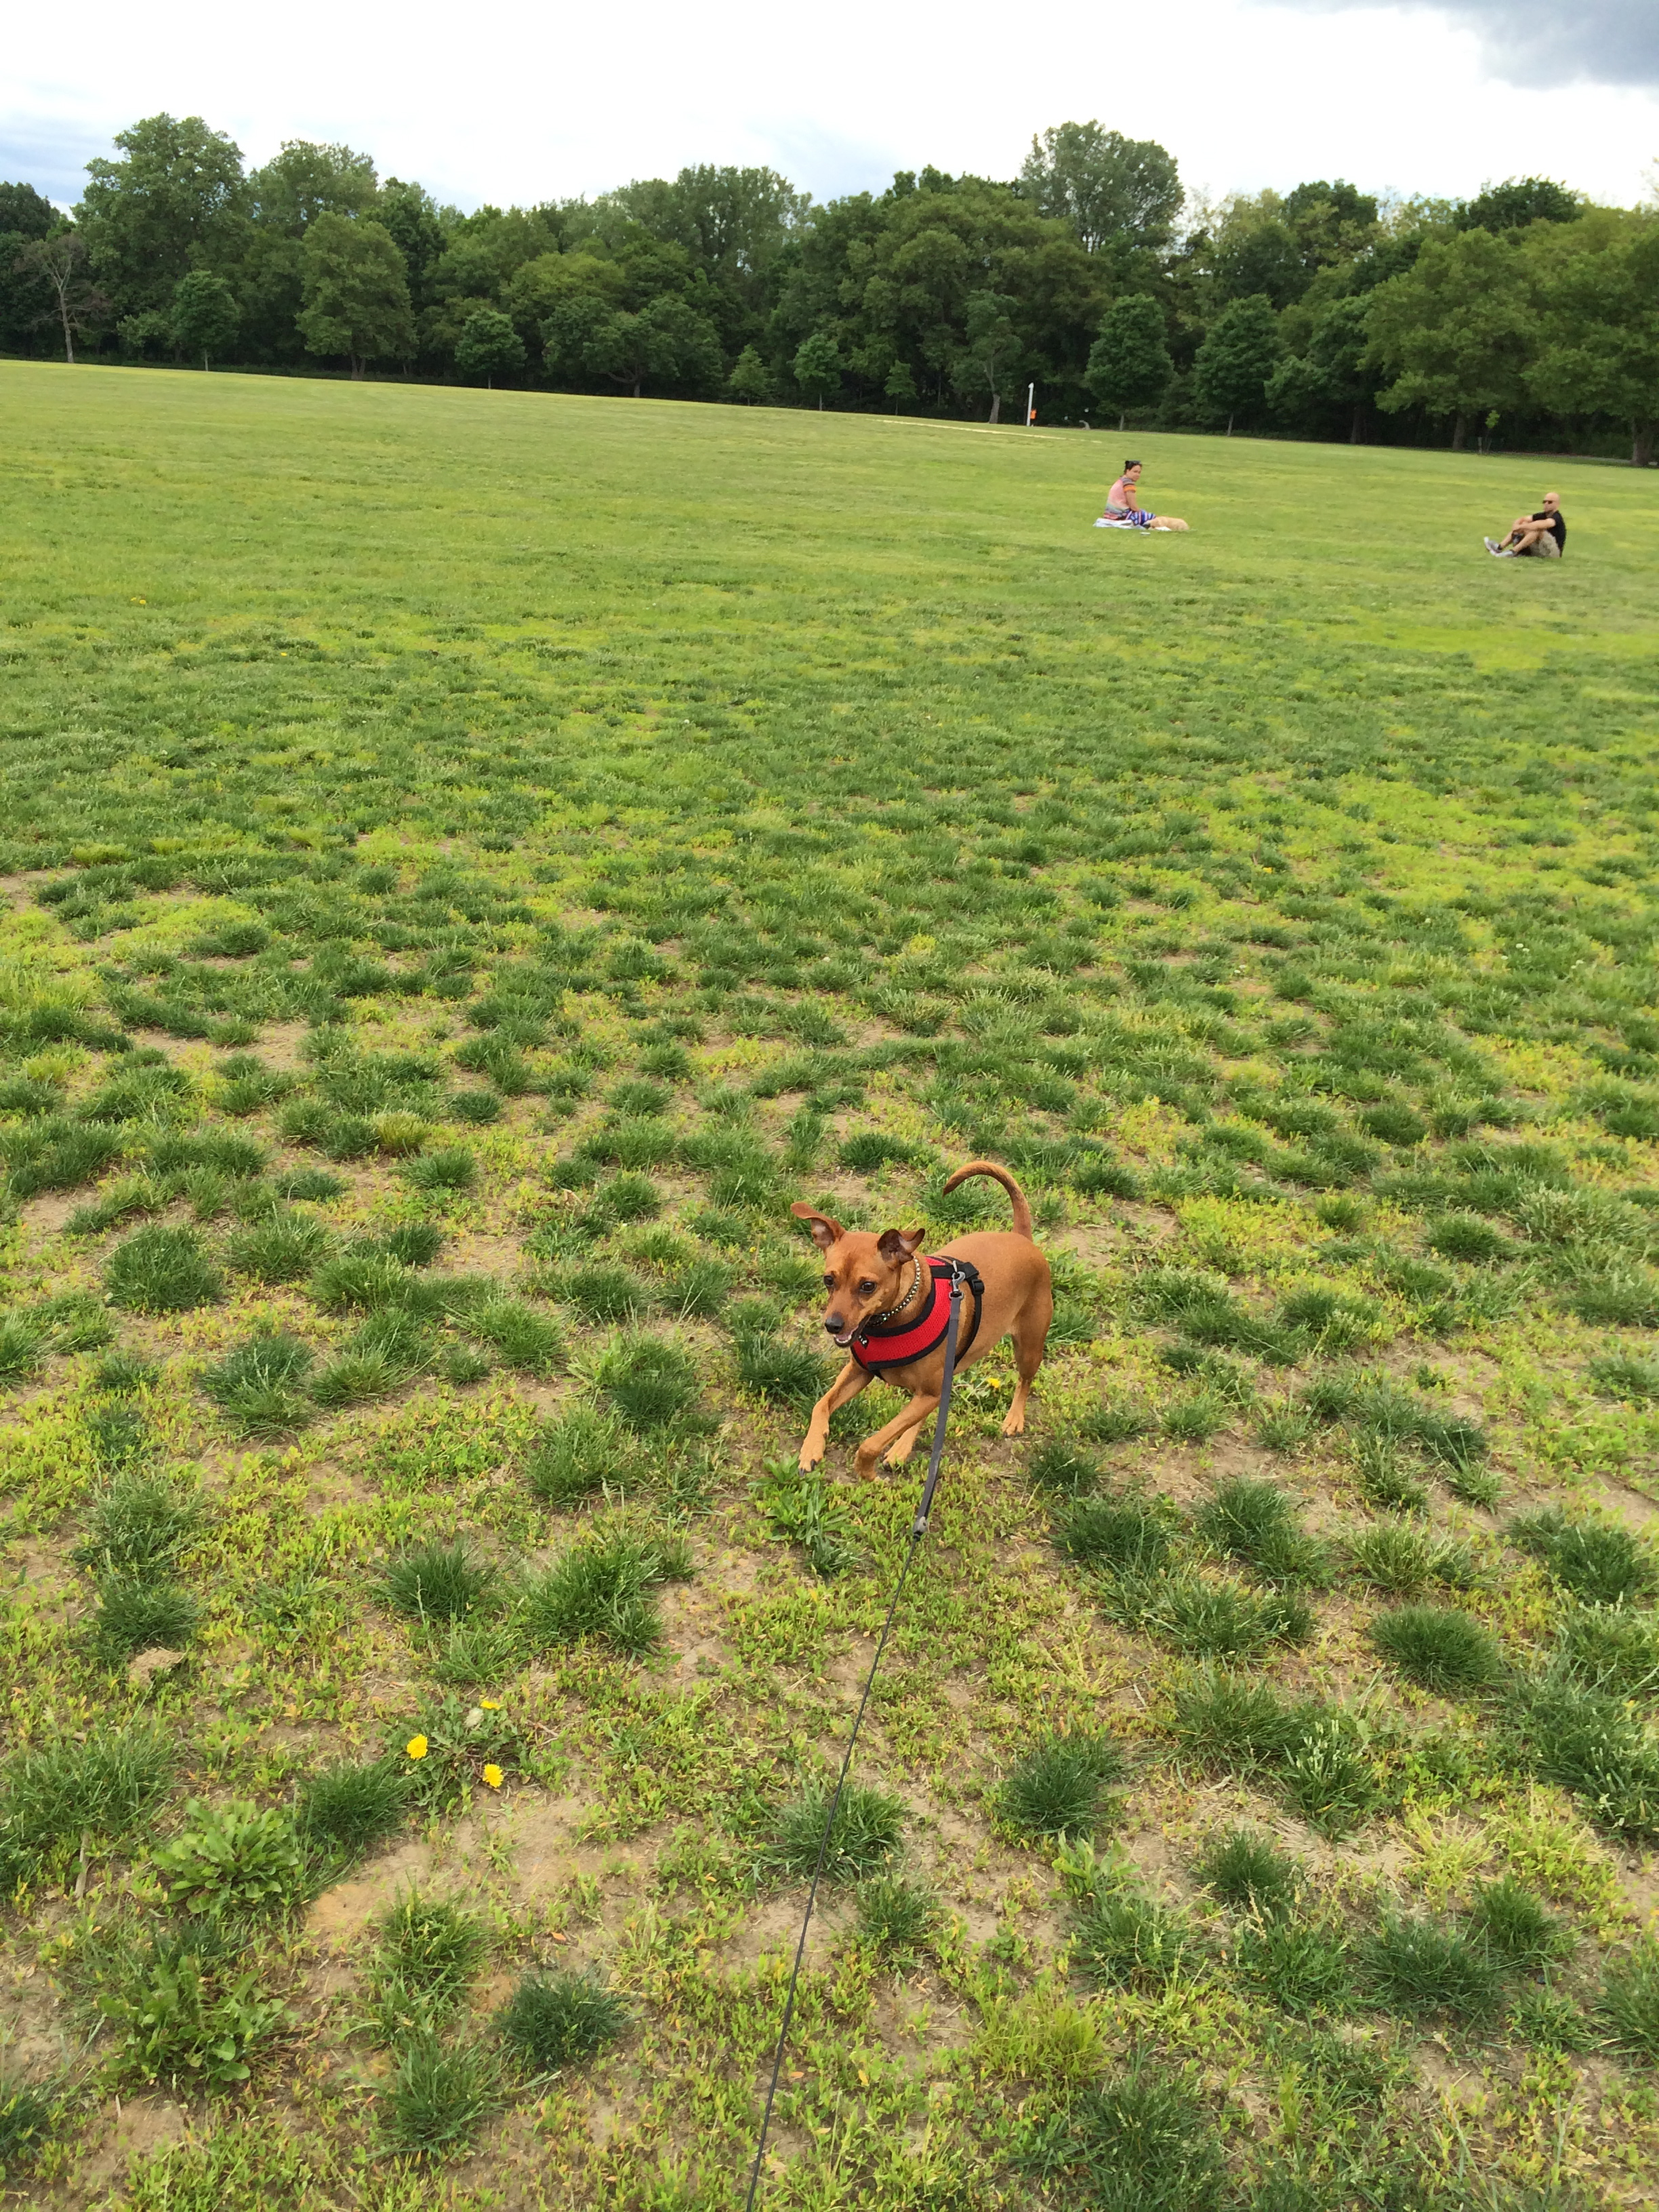 Avery happily frolicking across Parade Ground.